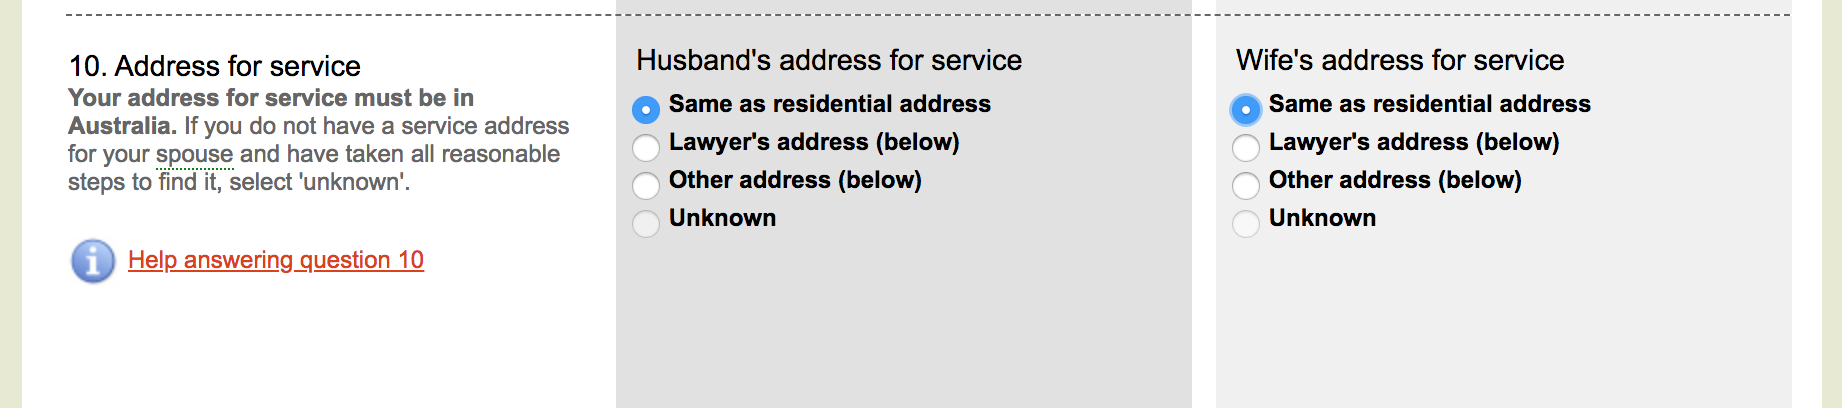 Address for service - commonwealth courts portal